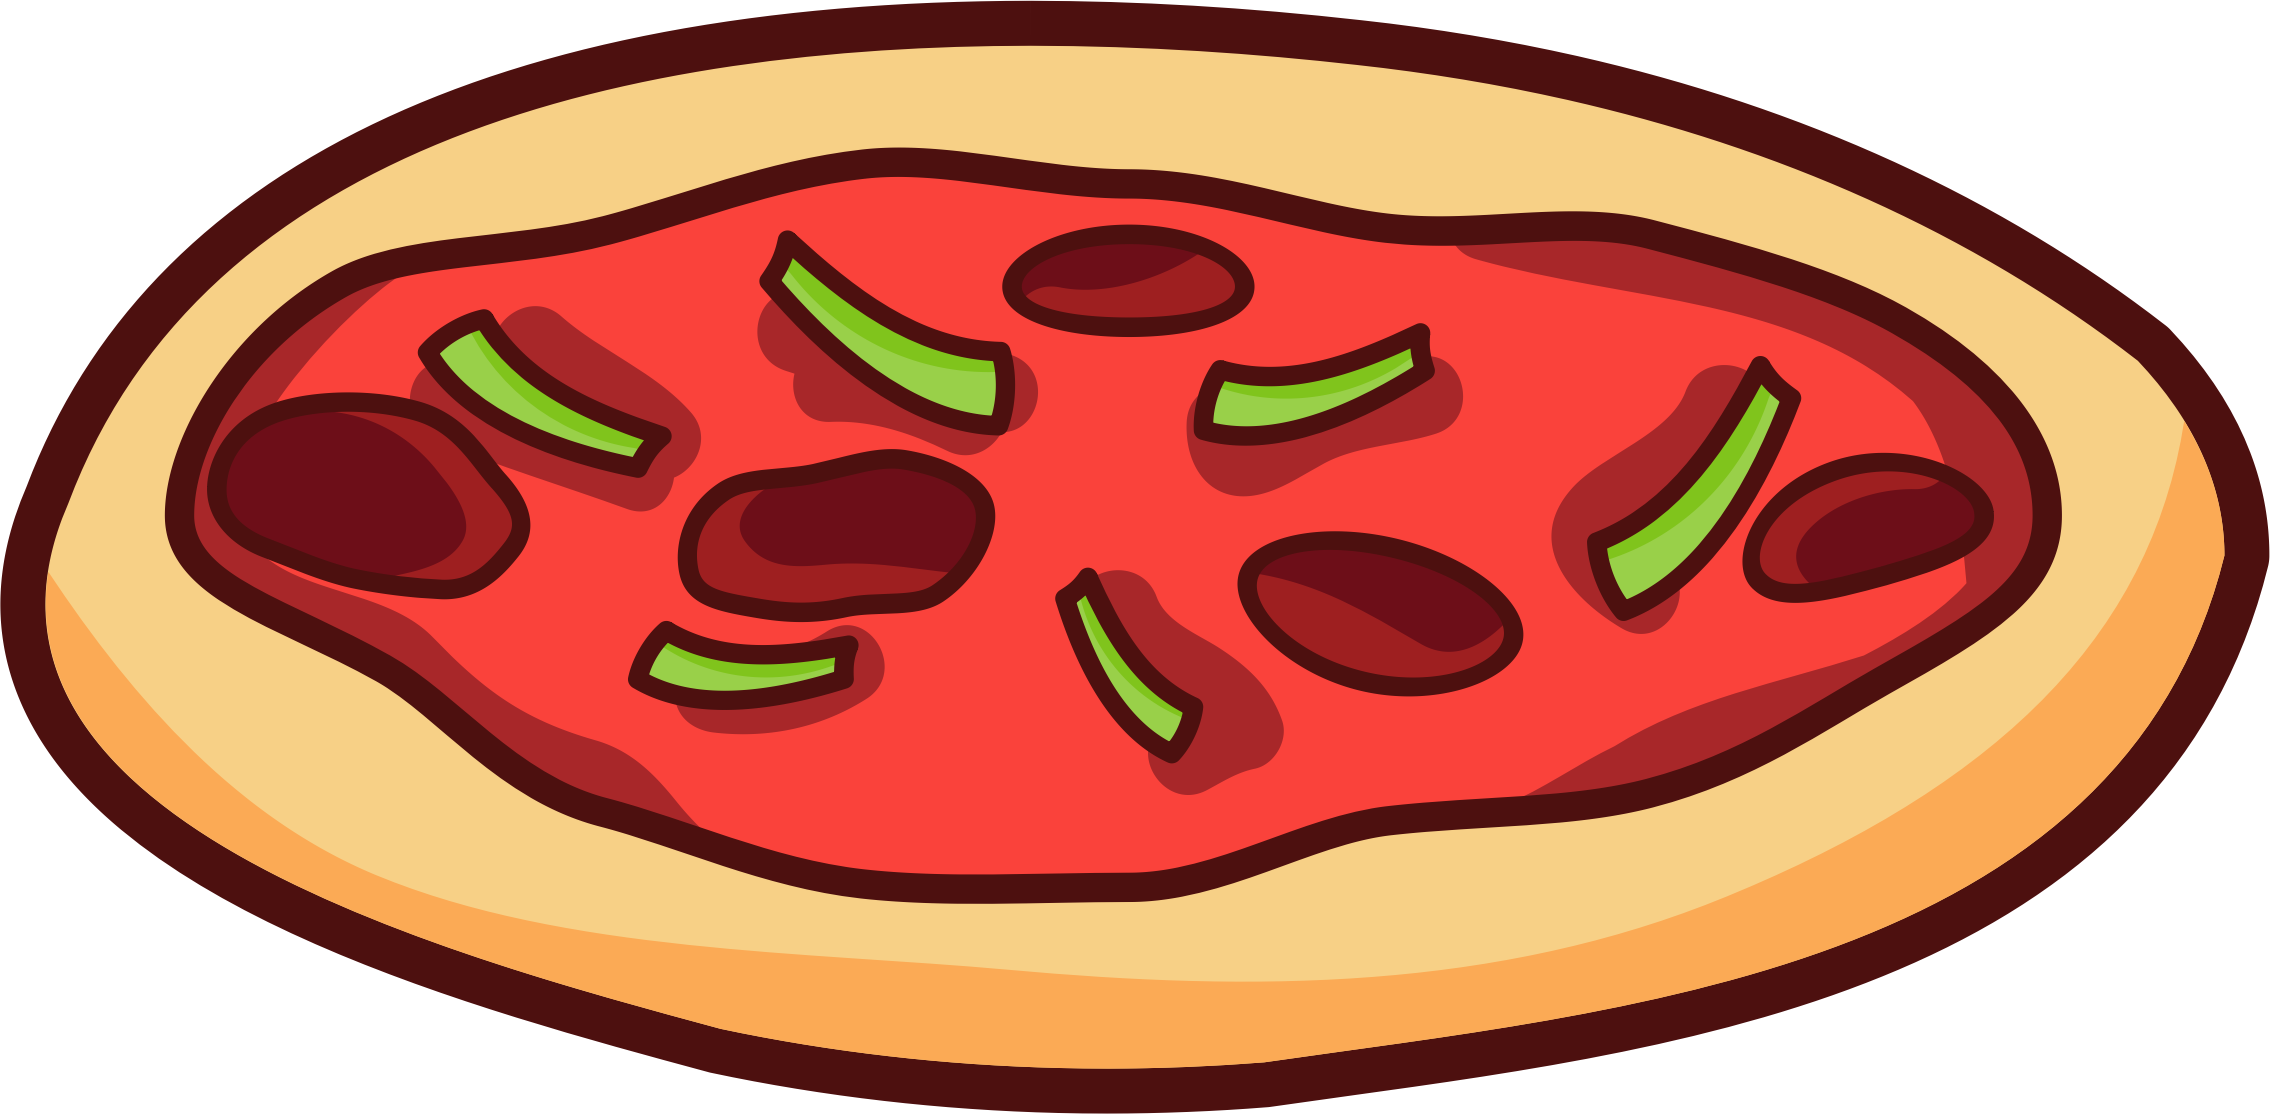 Food clipart pizza. Pepperoni icons png free